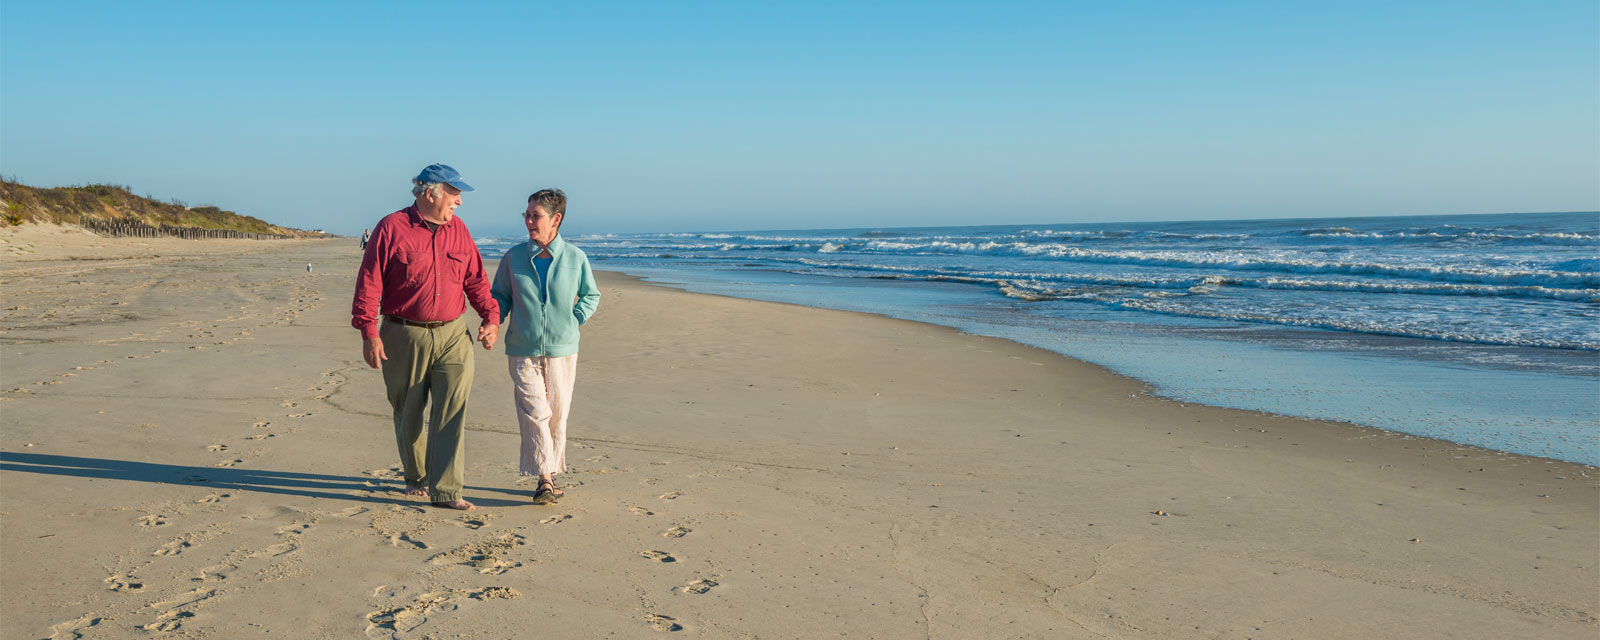 10 Ways to Spend Your Winter Vacation on the Outer Banks